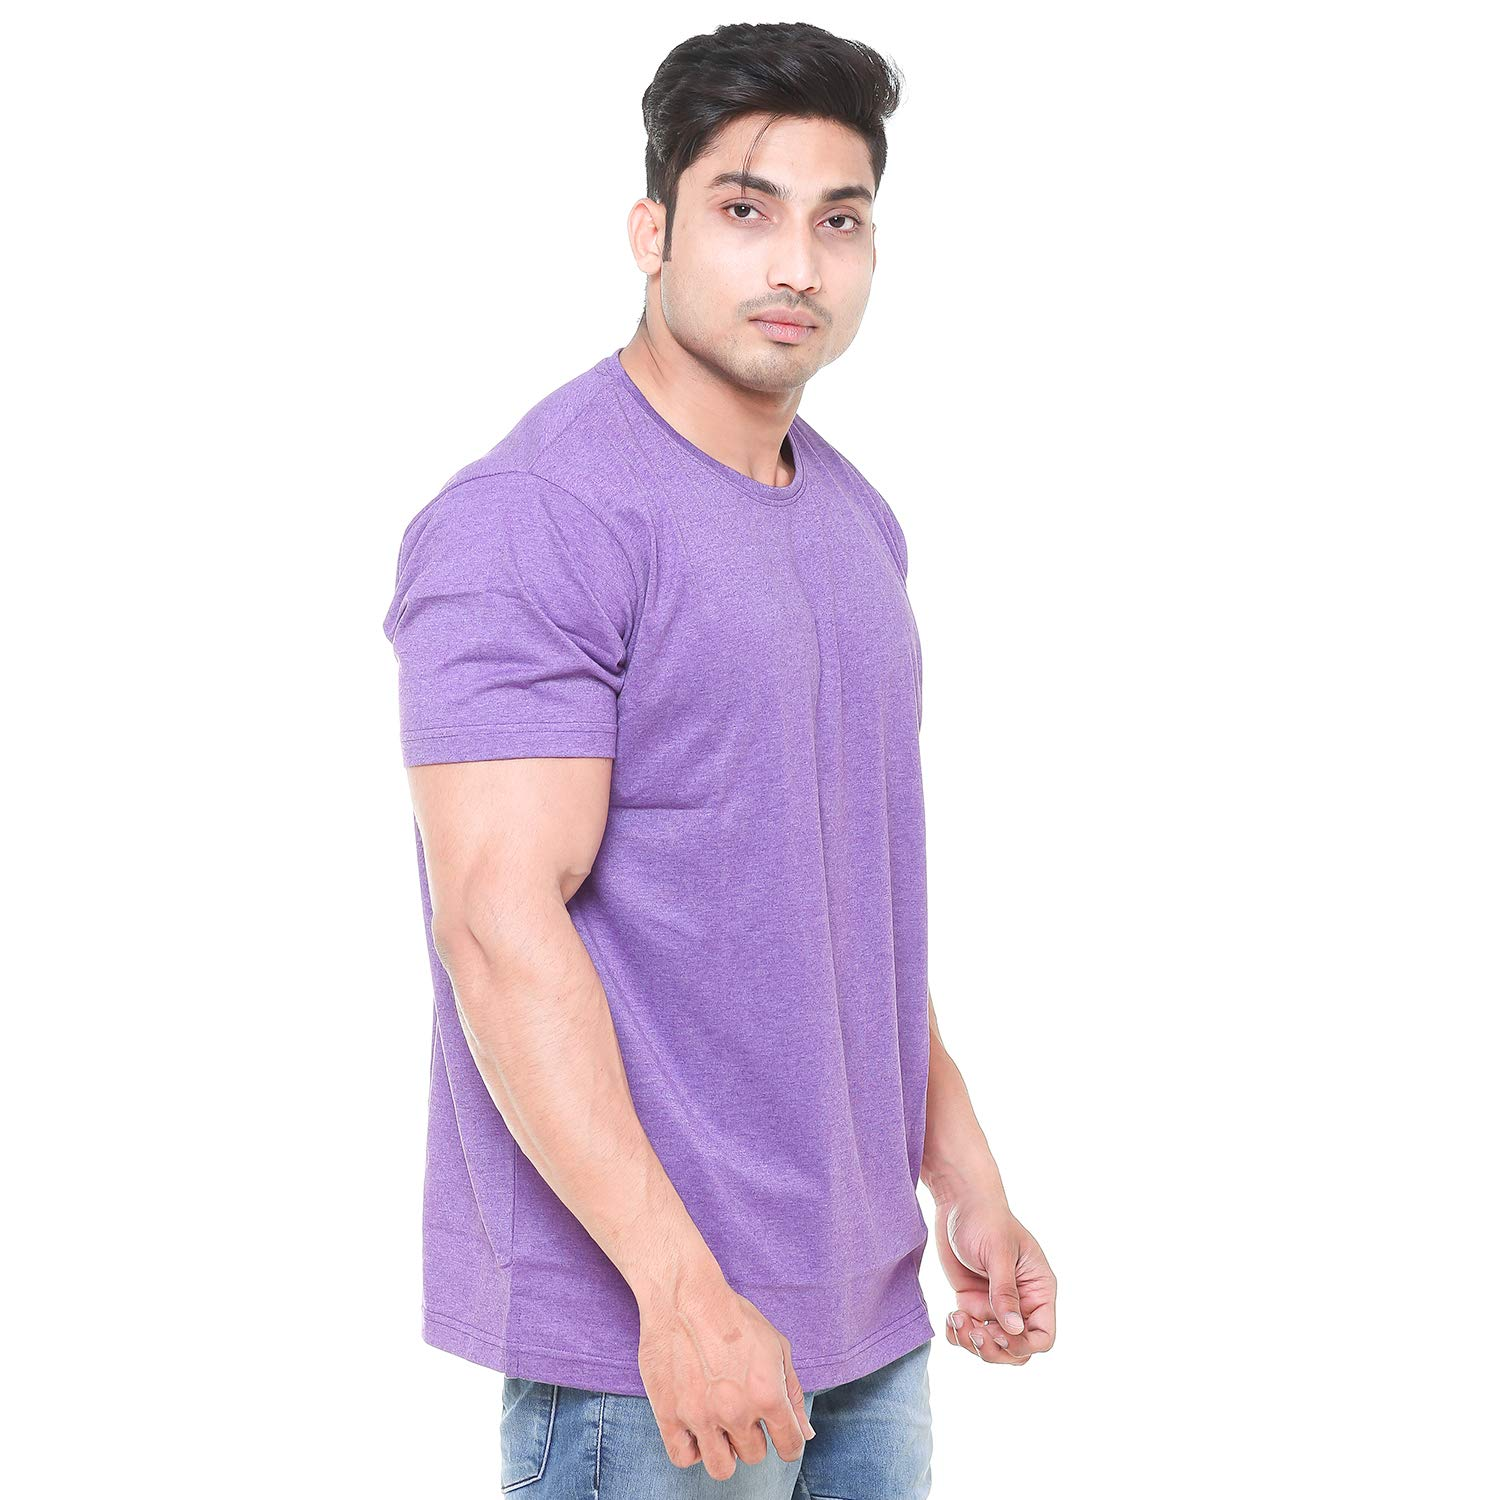 undefeated x new release entire collection EASY 2 WEAR ® Men Round Neck T-Shirts Sizes S to 5XL